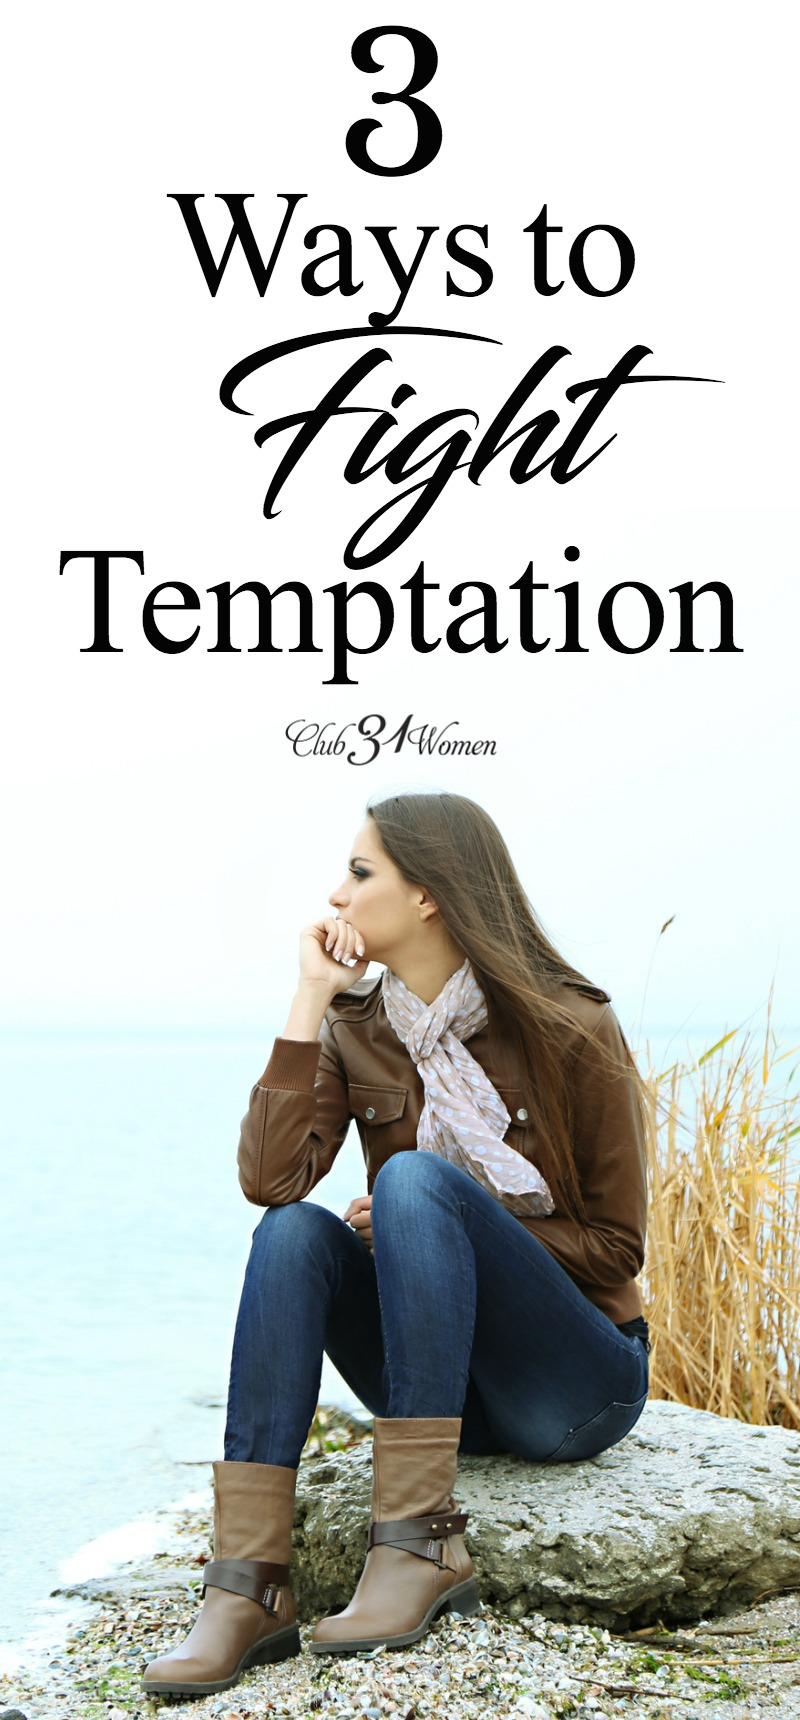 Every day we face temptations, but we can be equipped to resist them if we have the right tools. Here are three ways to help you fight temptation. via @Club31Women